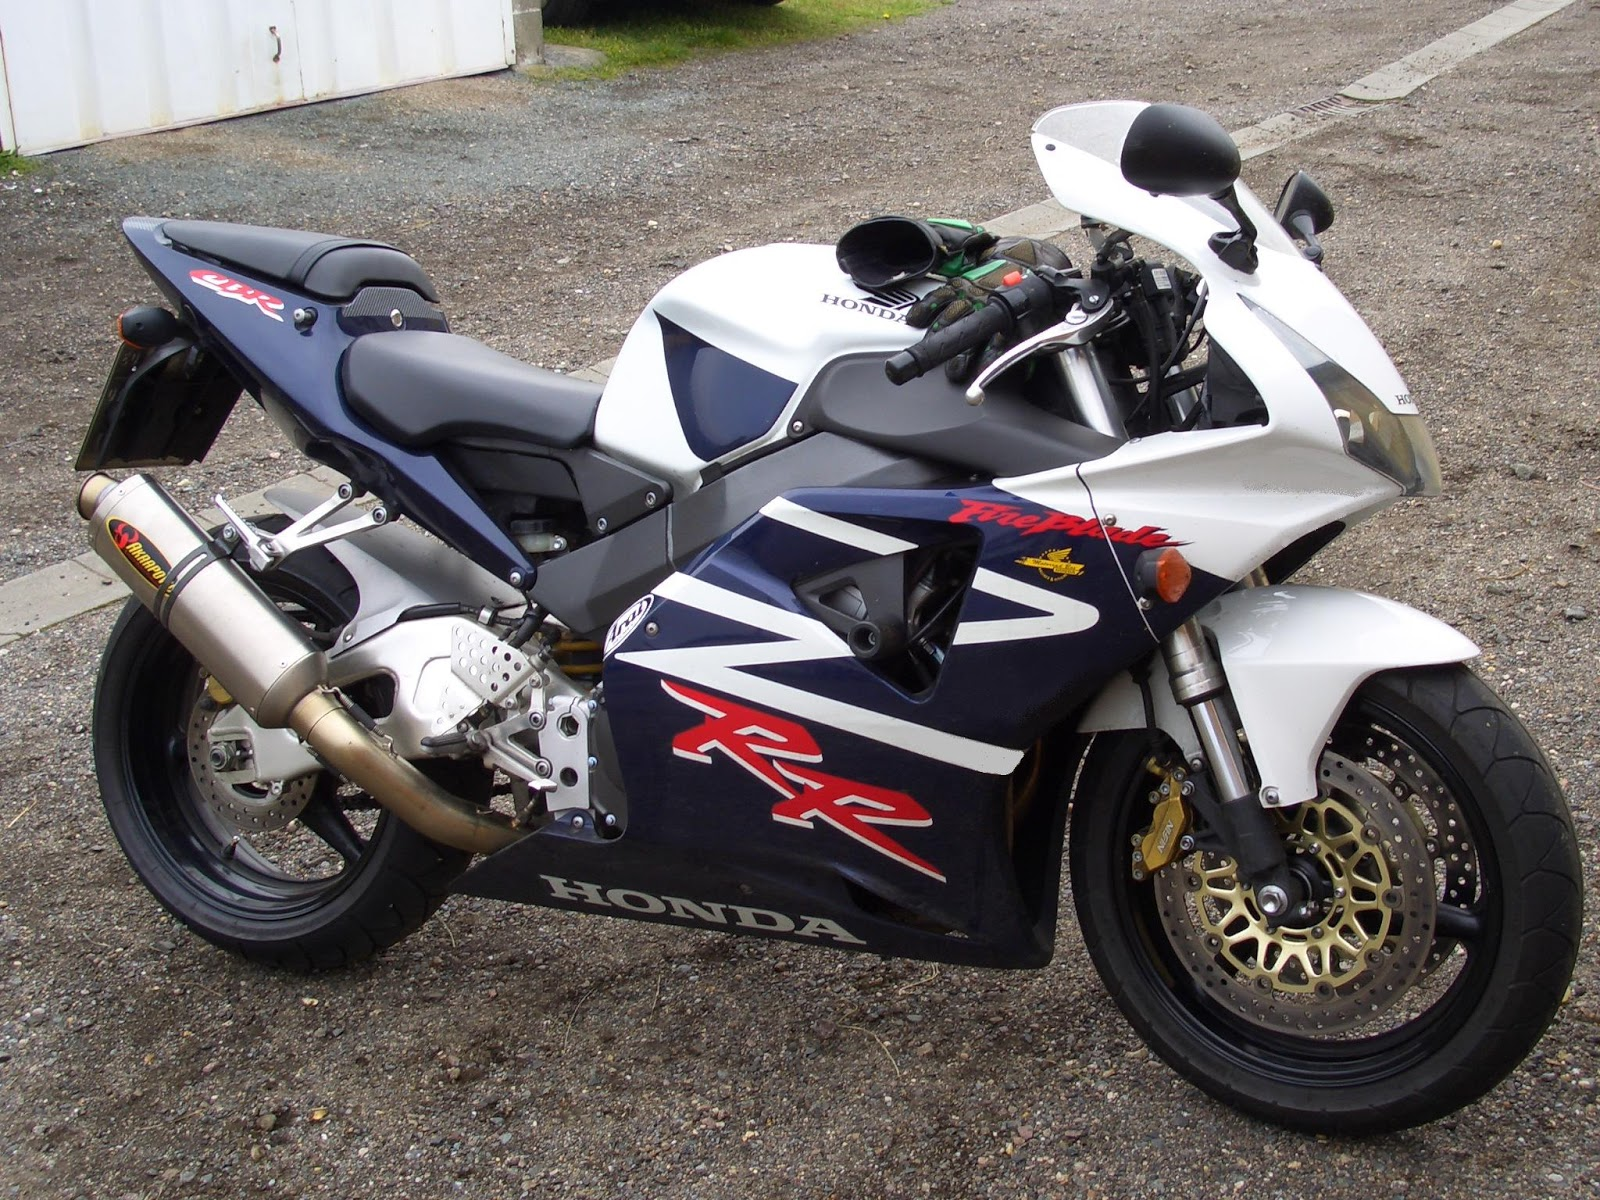 Honda CBR900RR(954) 2002-2003 Workshop Service Repair Manual